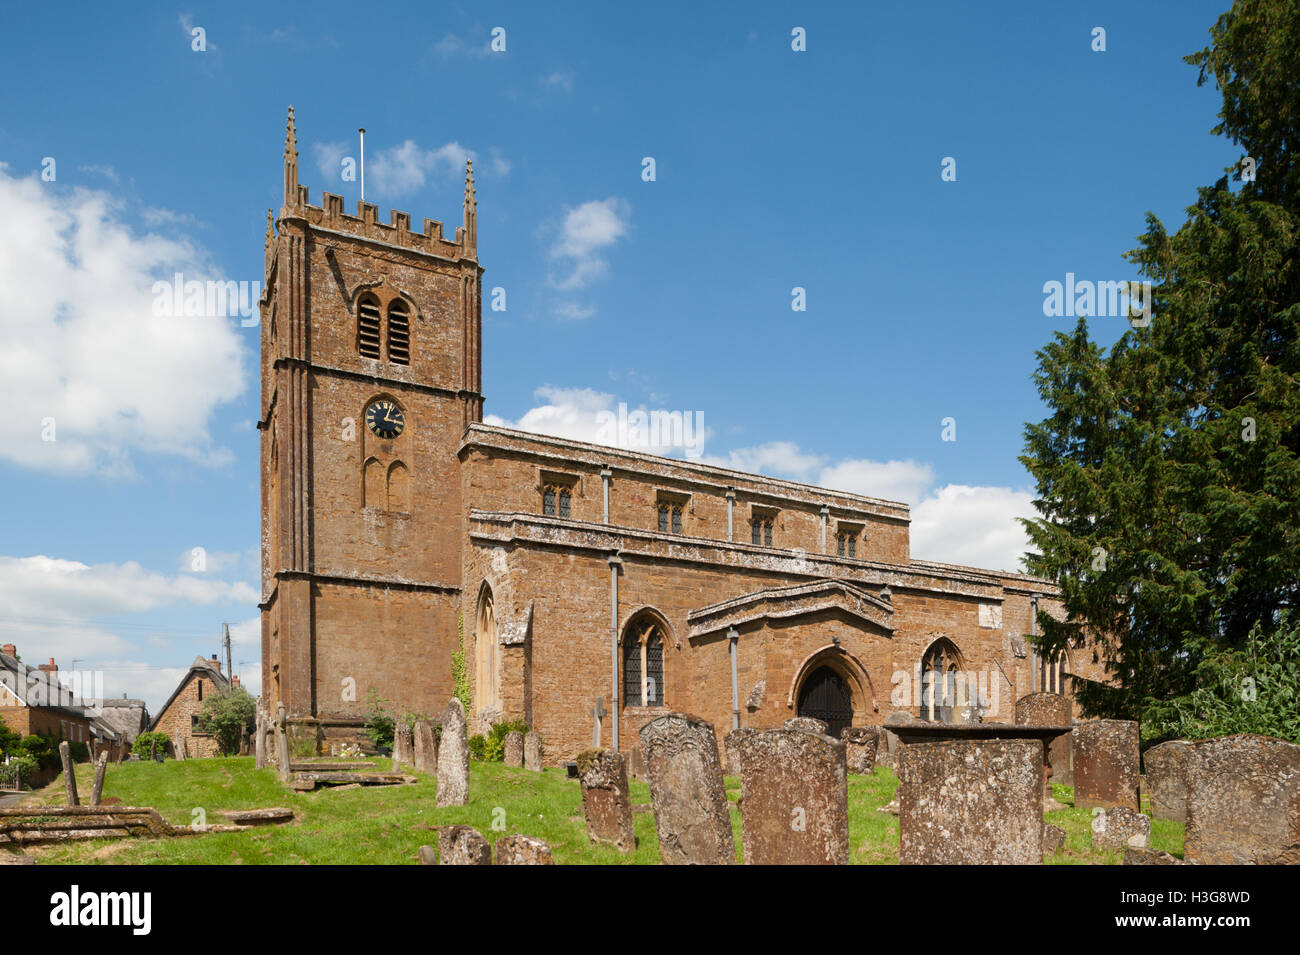 All Saints Church, Wroxton, North Oxfordshire, England, UK Stock Photo